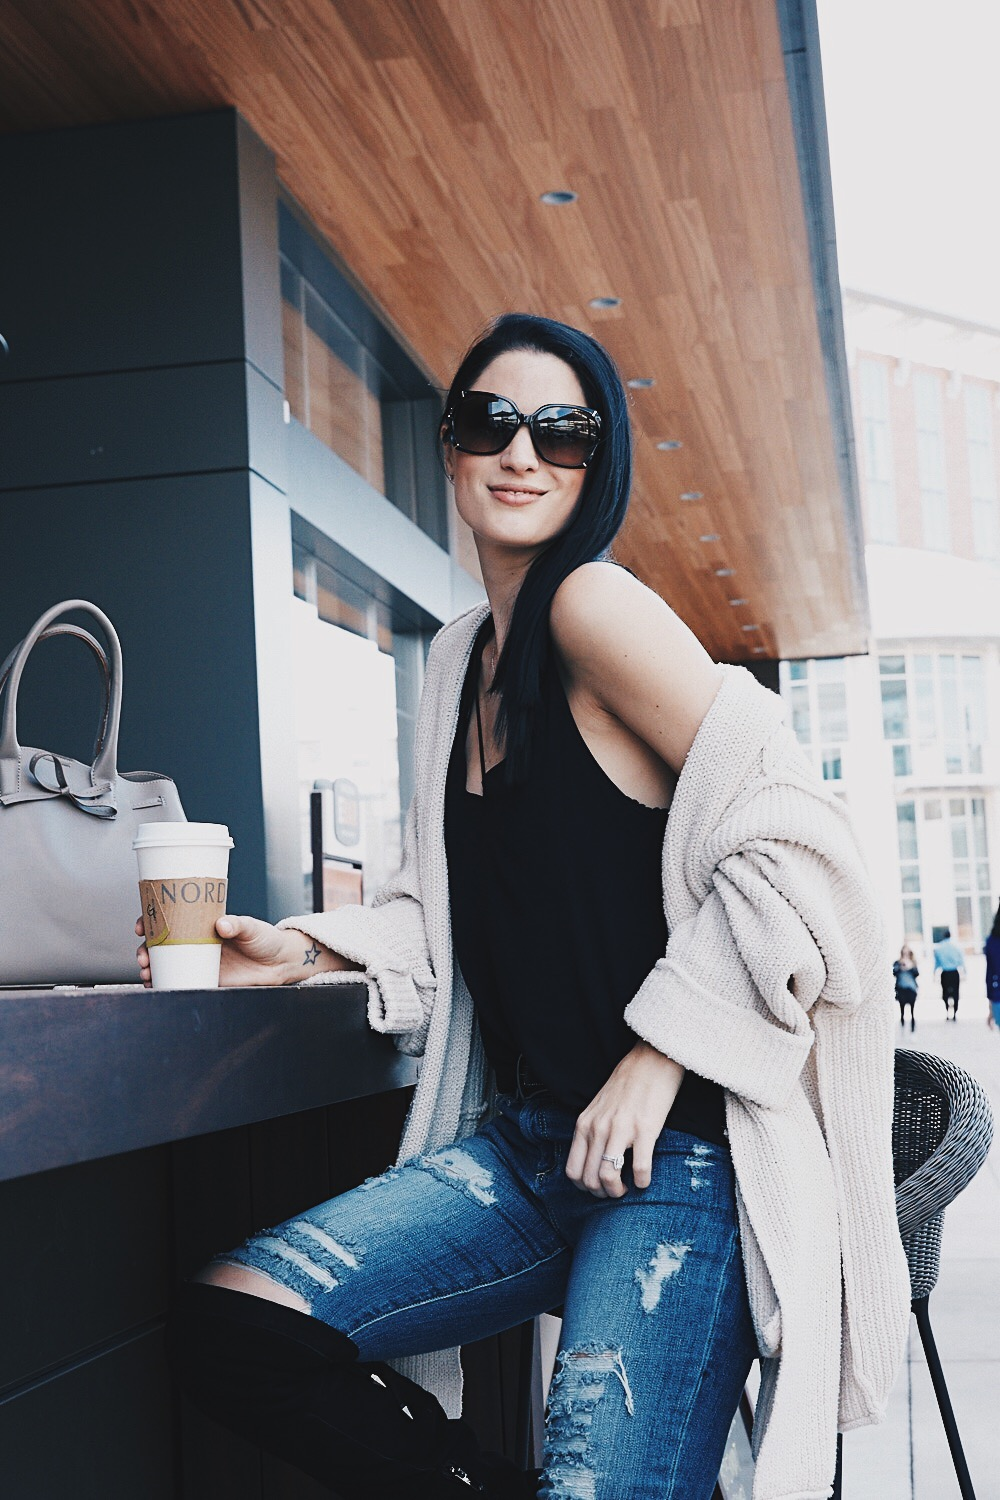 DTKAustin shows how to layer a cami with a knit cardigan and OTK boots for a cozy winter look. Click through for more outfit ideas!